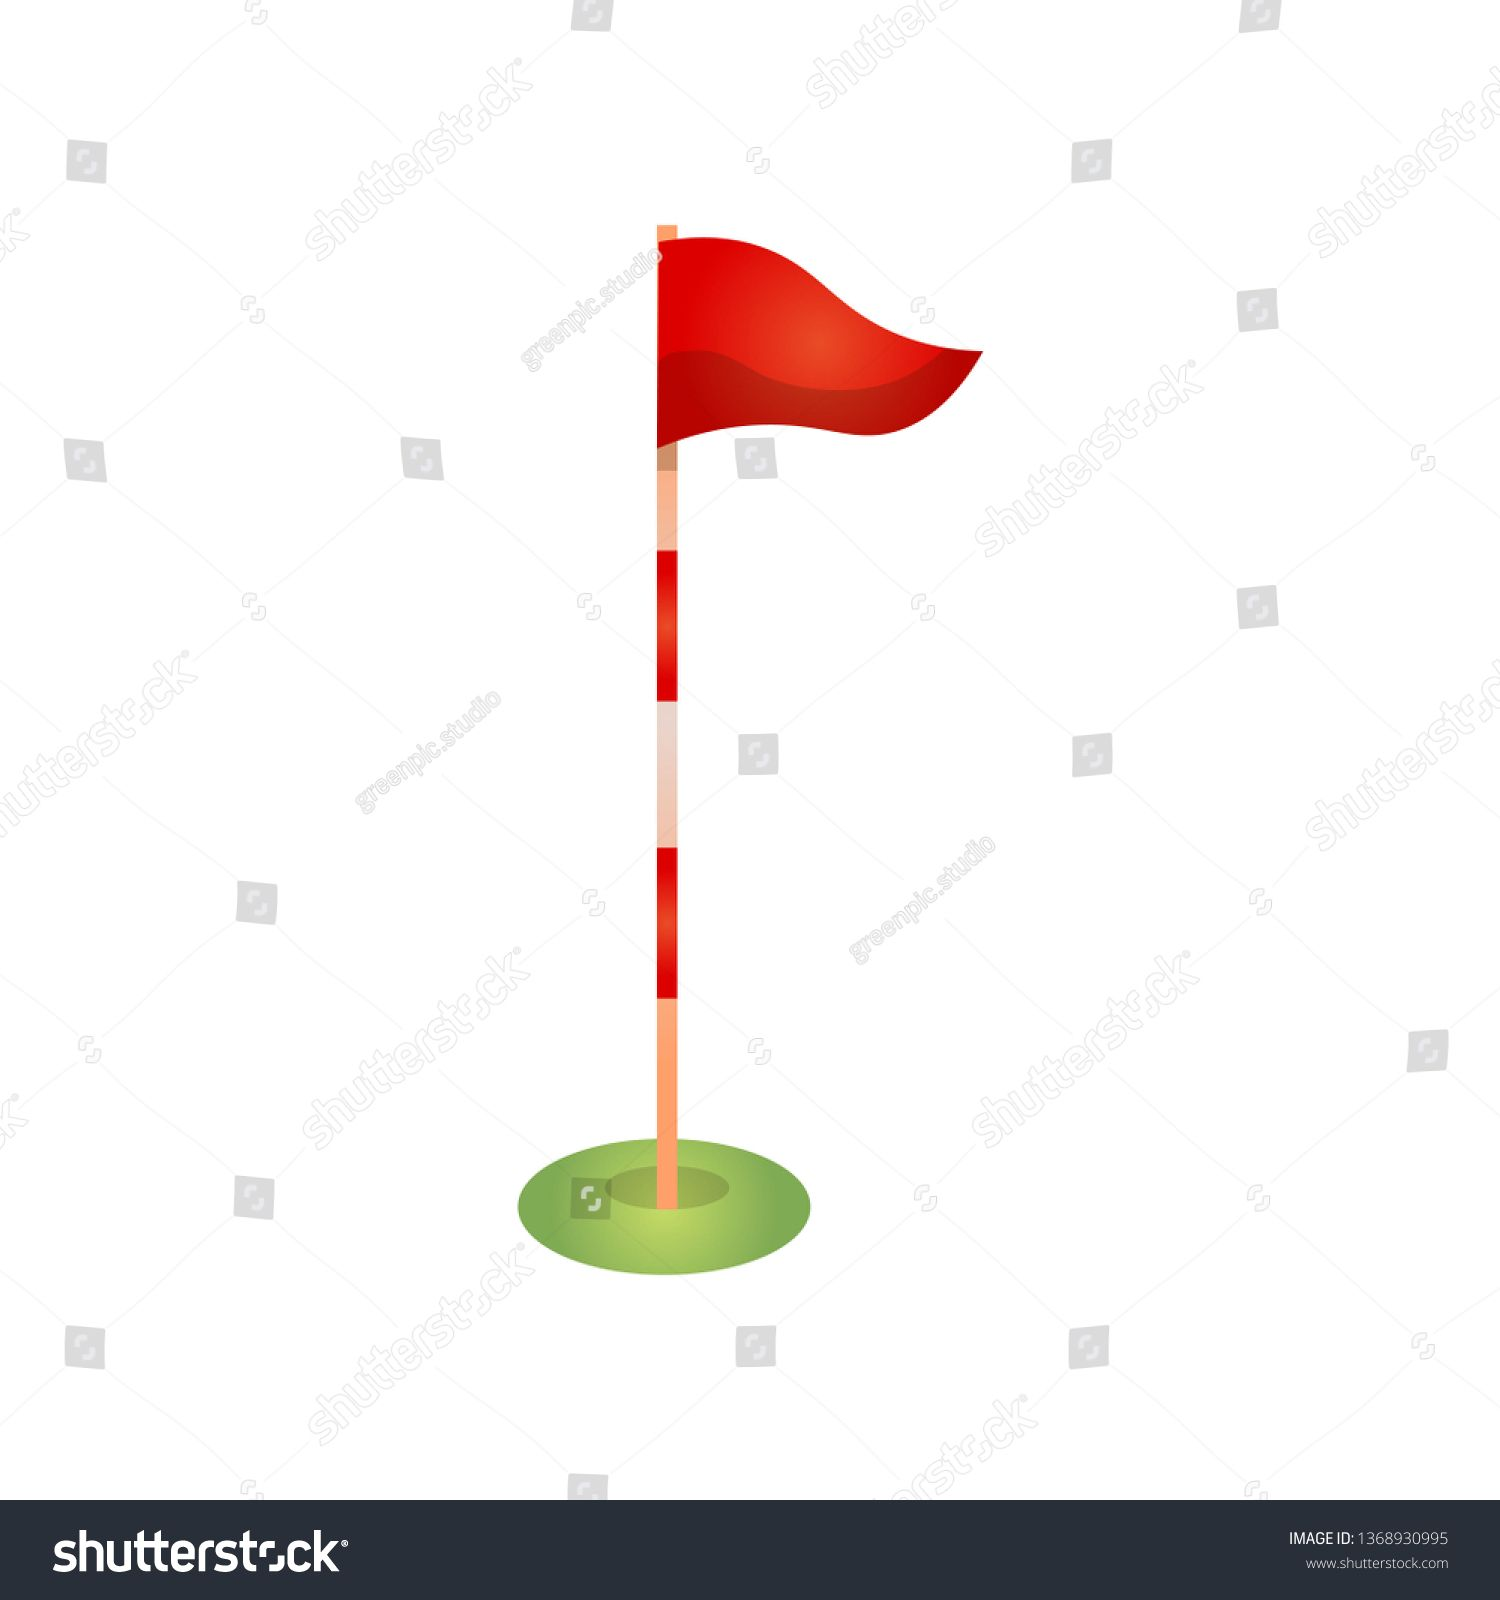 Red Golf Flag Pole With Marks And Wind Direction Ad Ad Flag Golf Red Pole Business Card Black Professional Business Cards Wind Direction